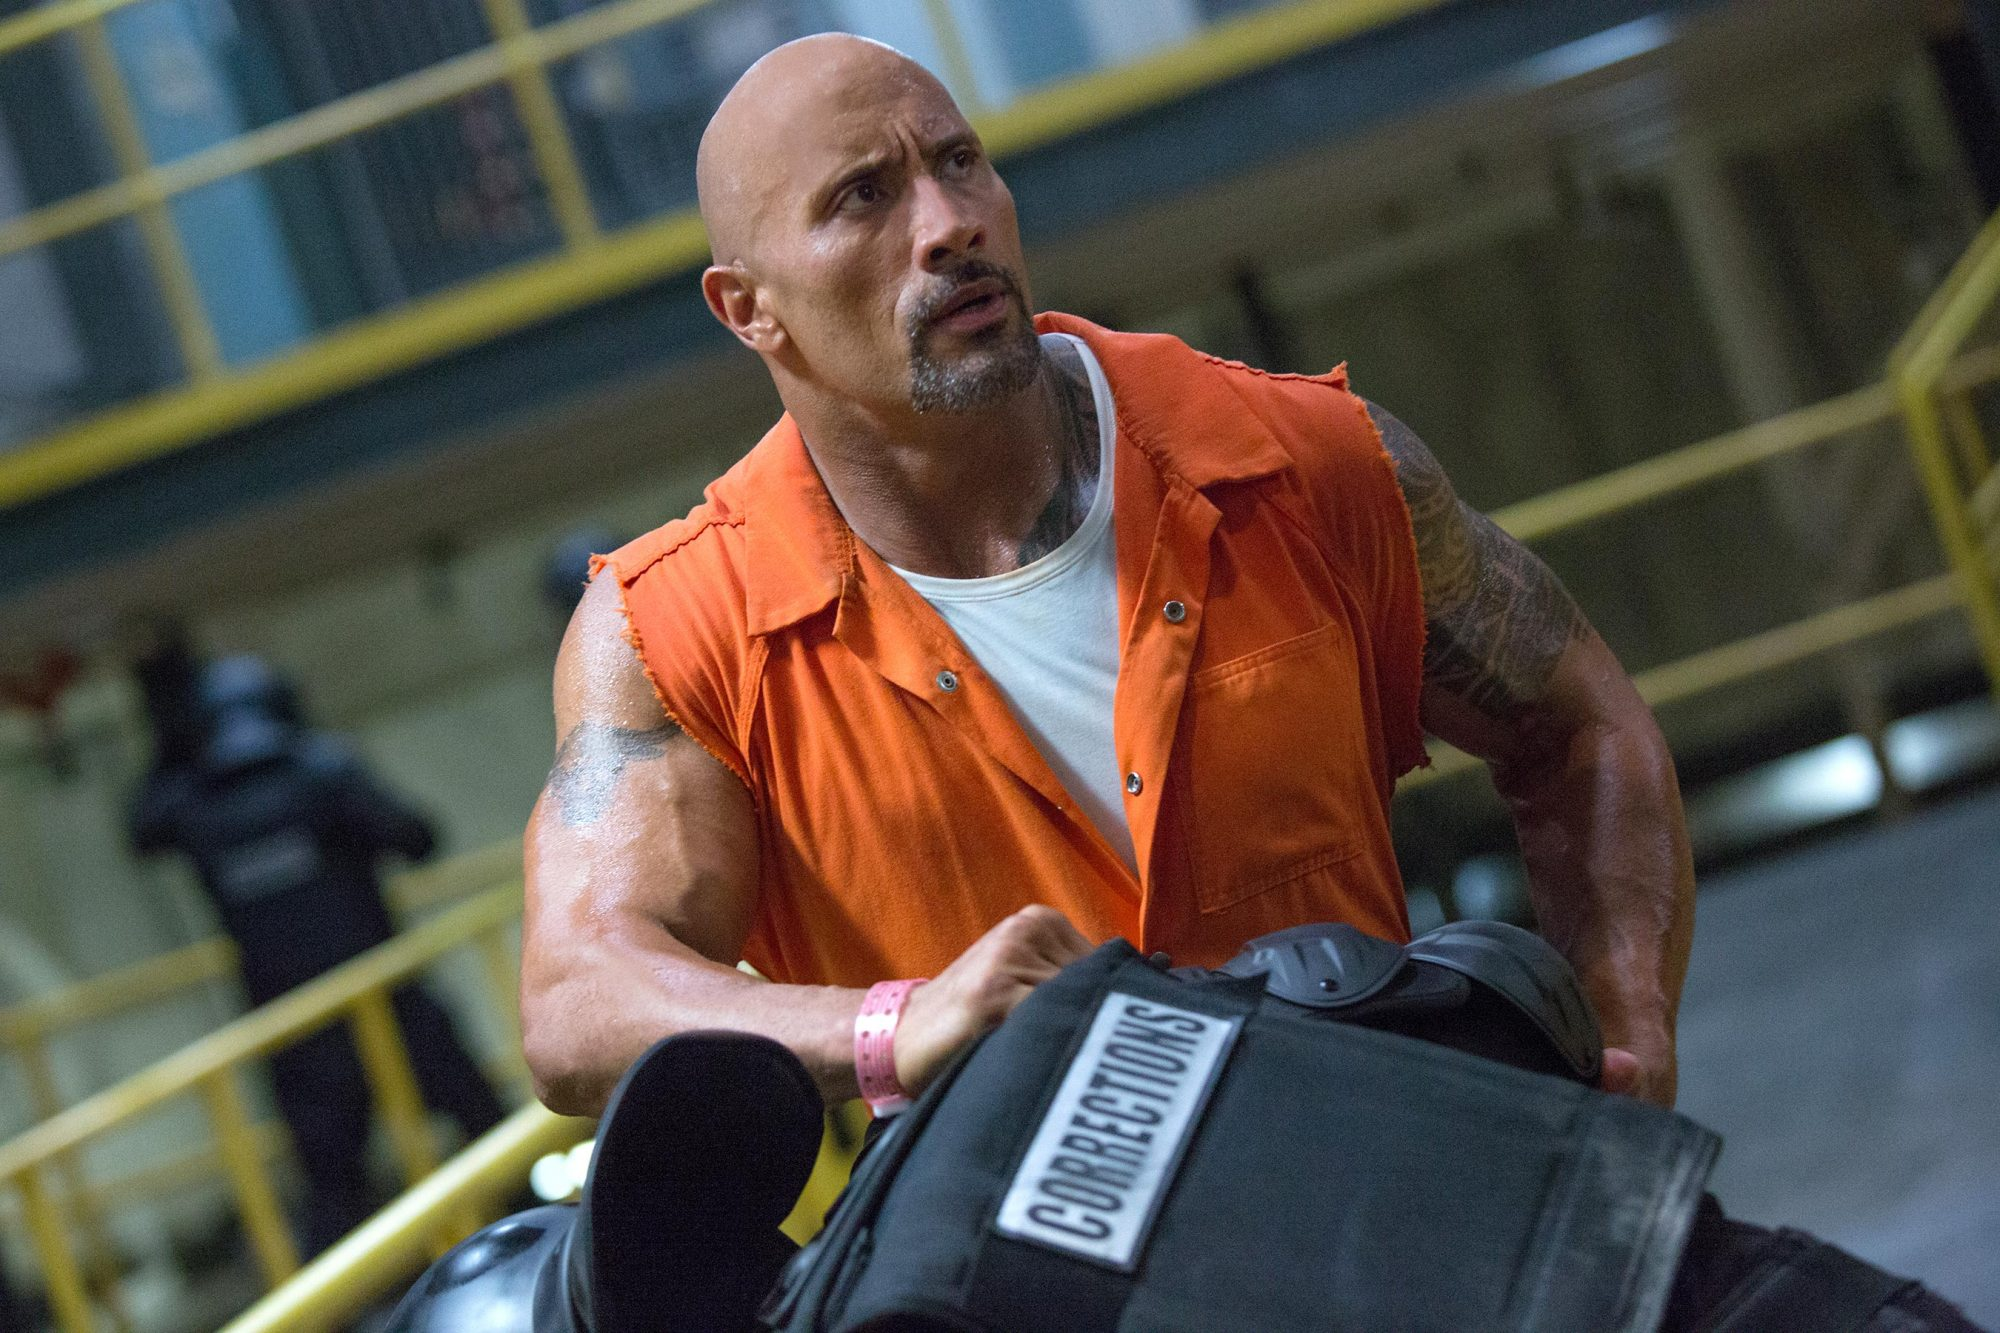 Film Title: The Fate of the Furious